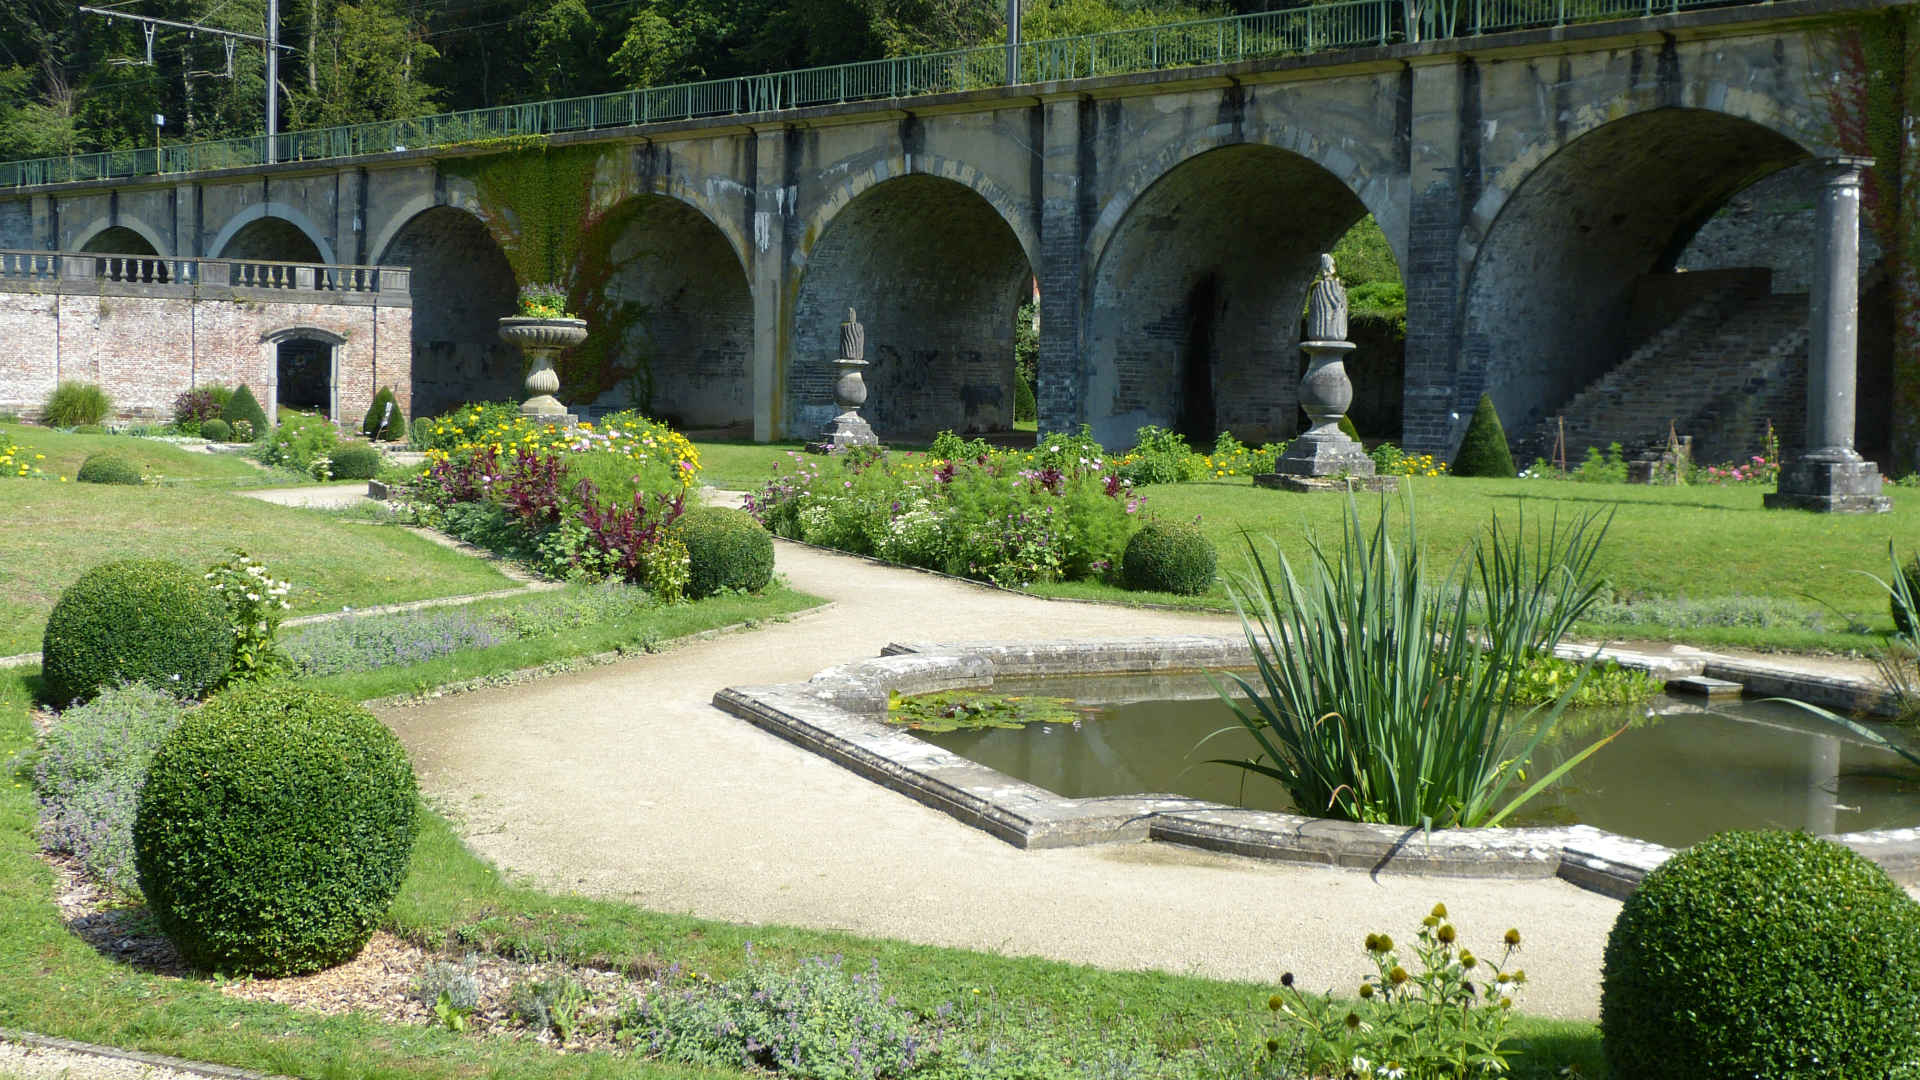 The Abbot's Garden - Villers Abbey